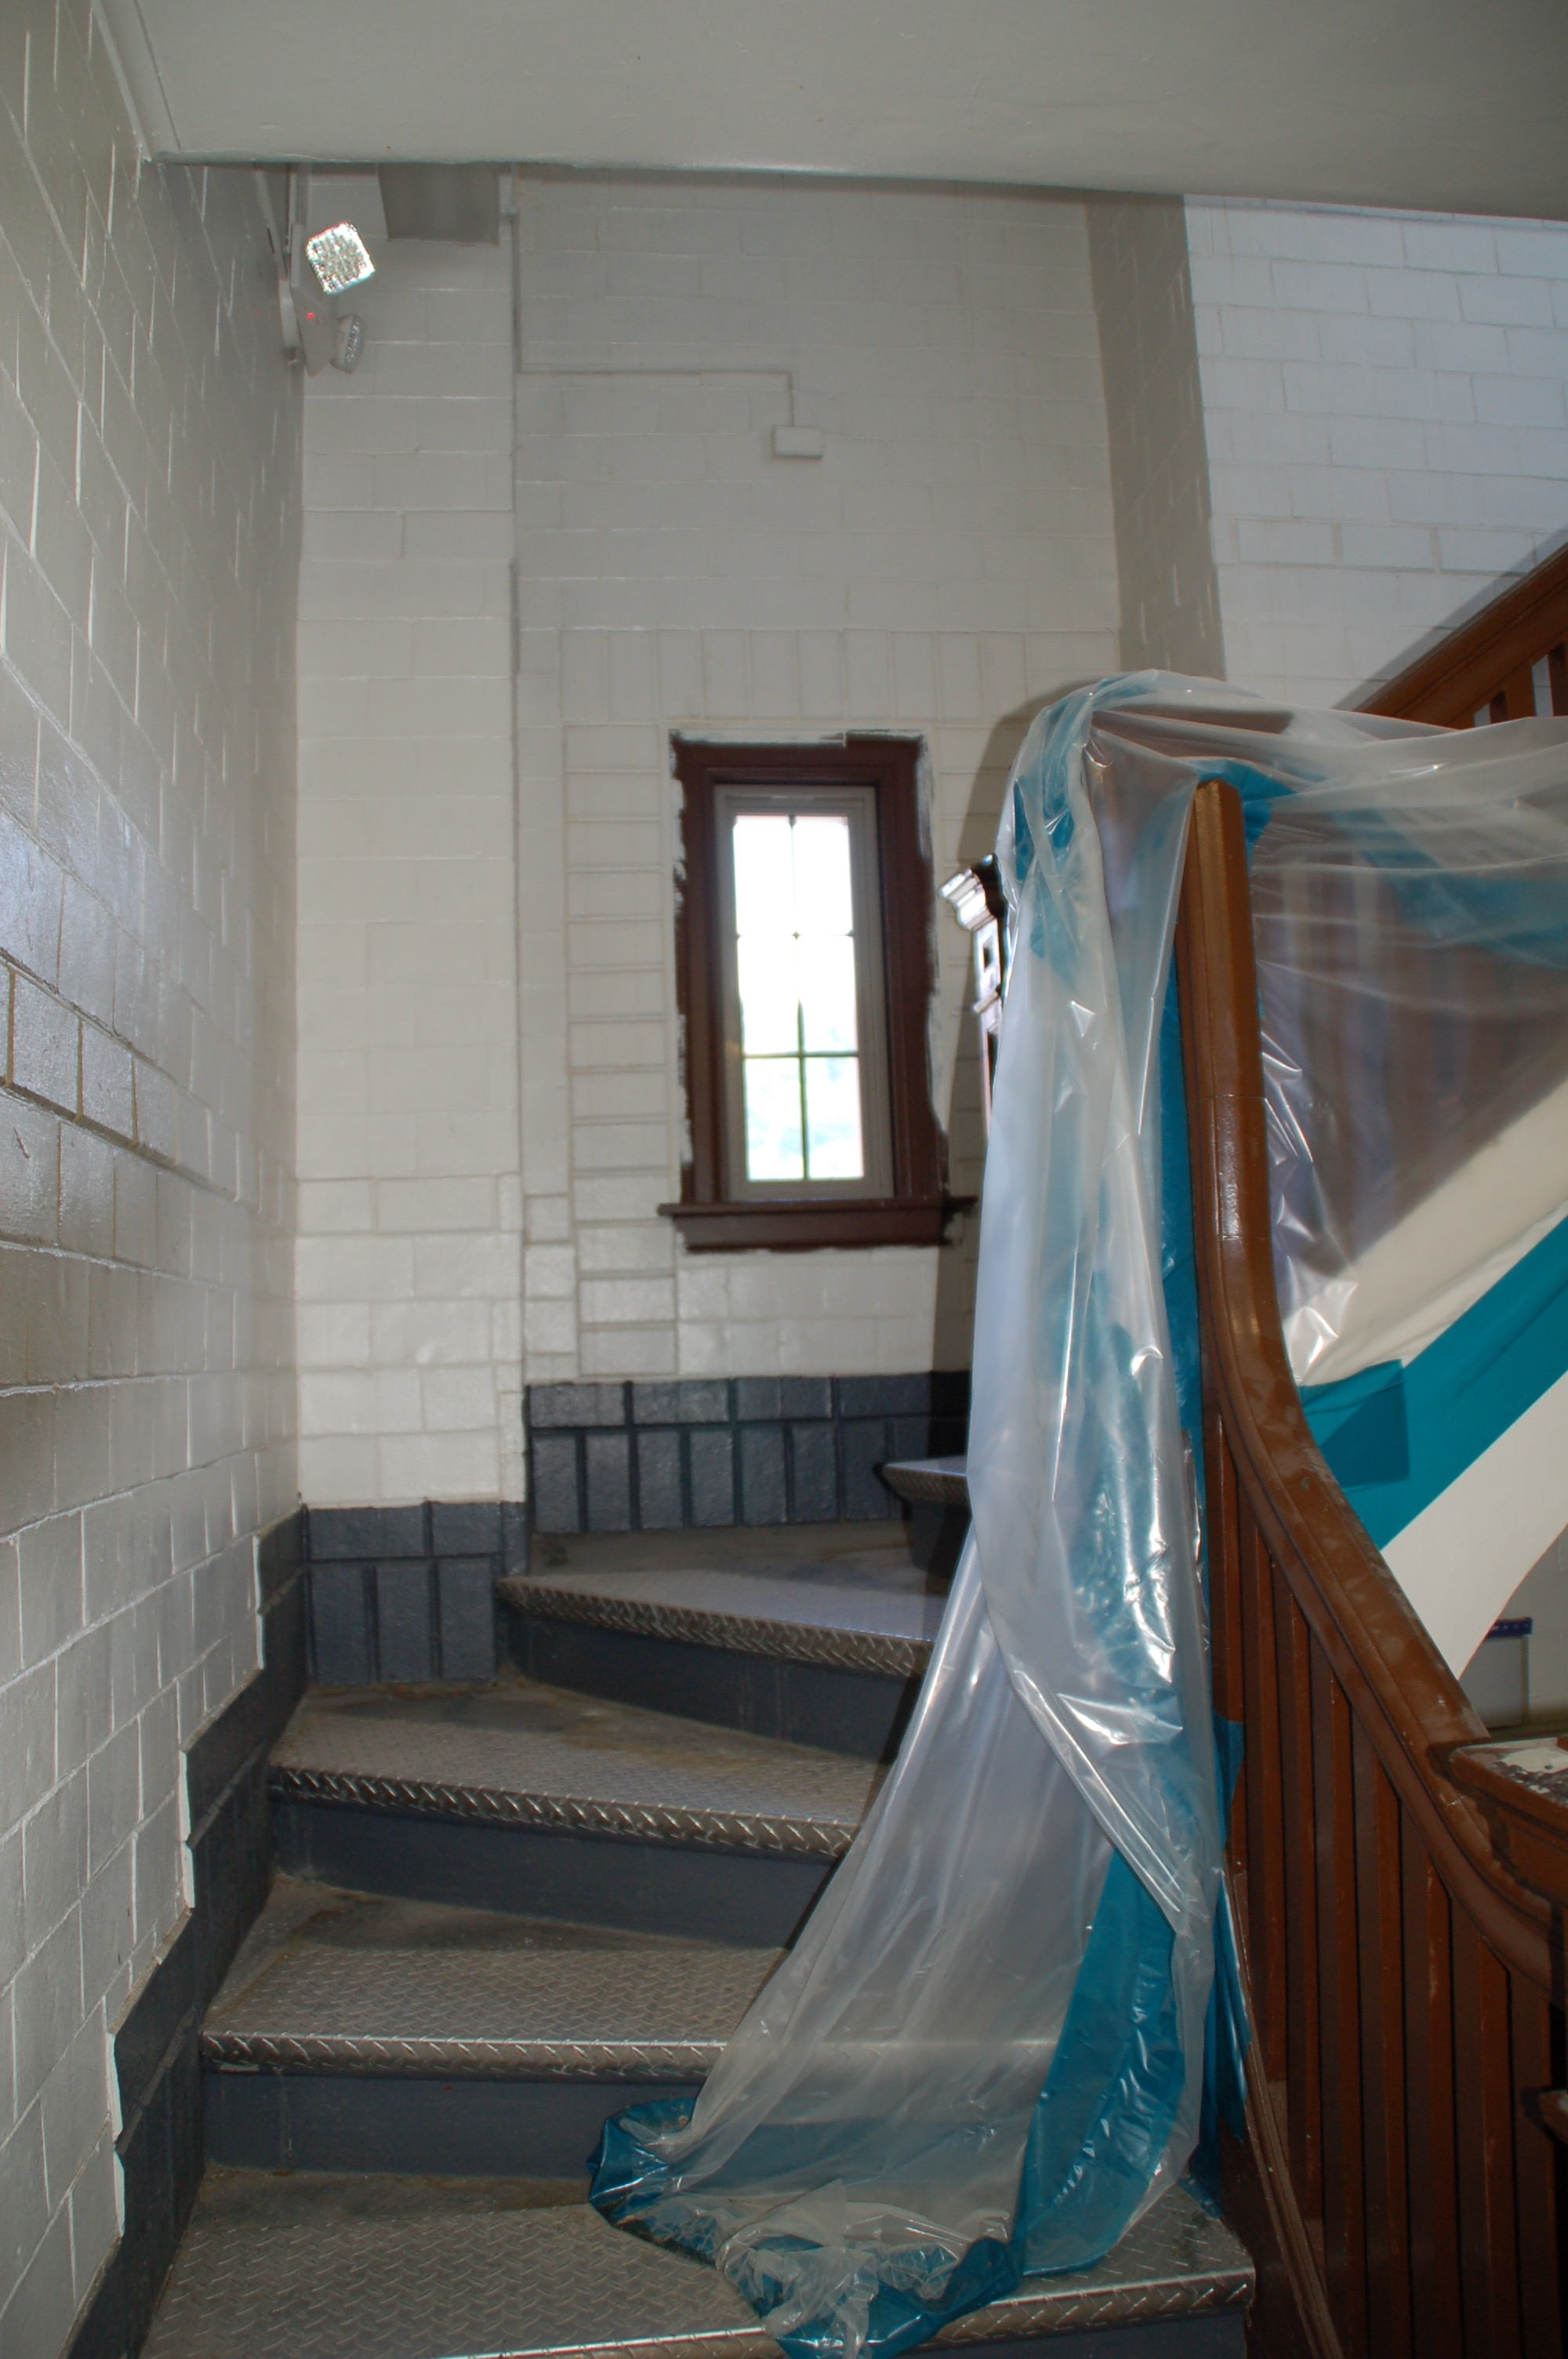 Stairs up to the 2nd floor room.